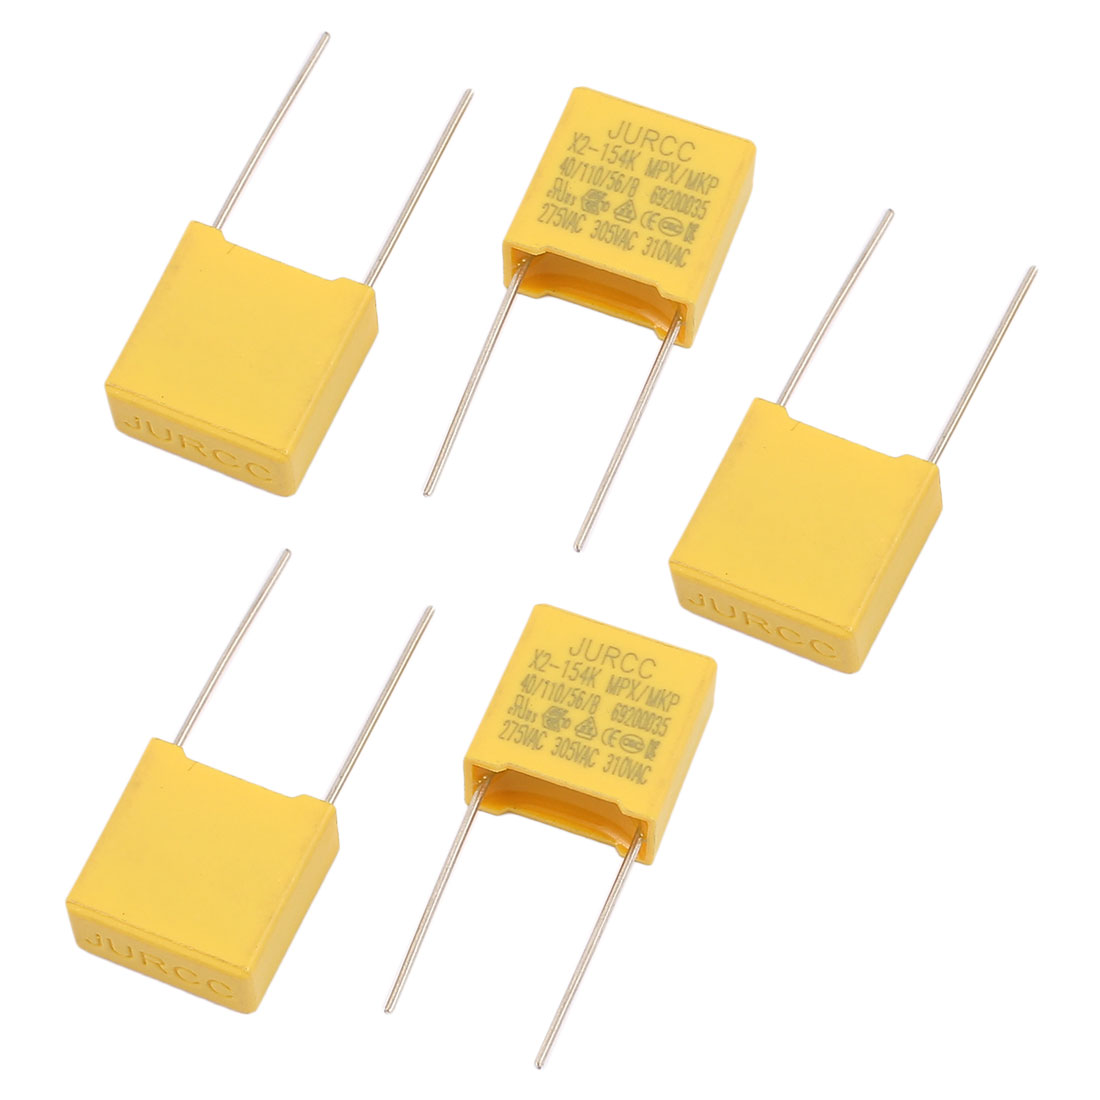 5Pcs Metal Axial Leads Safety Polyester Film Capacitor 310VAC 0.15uF Yellow